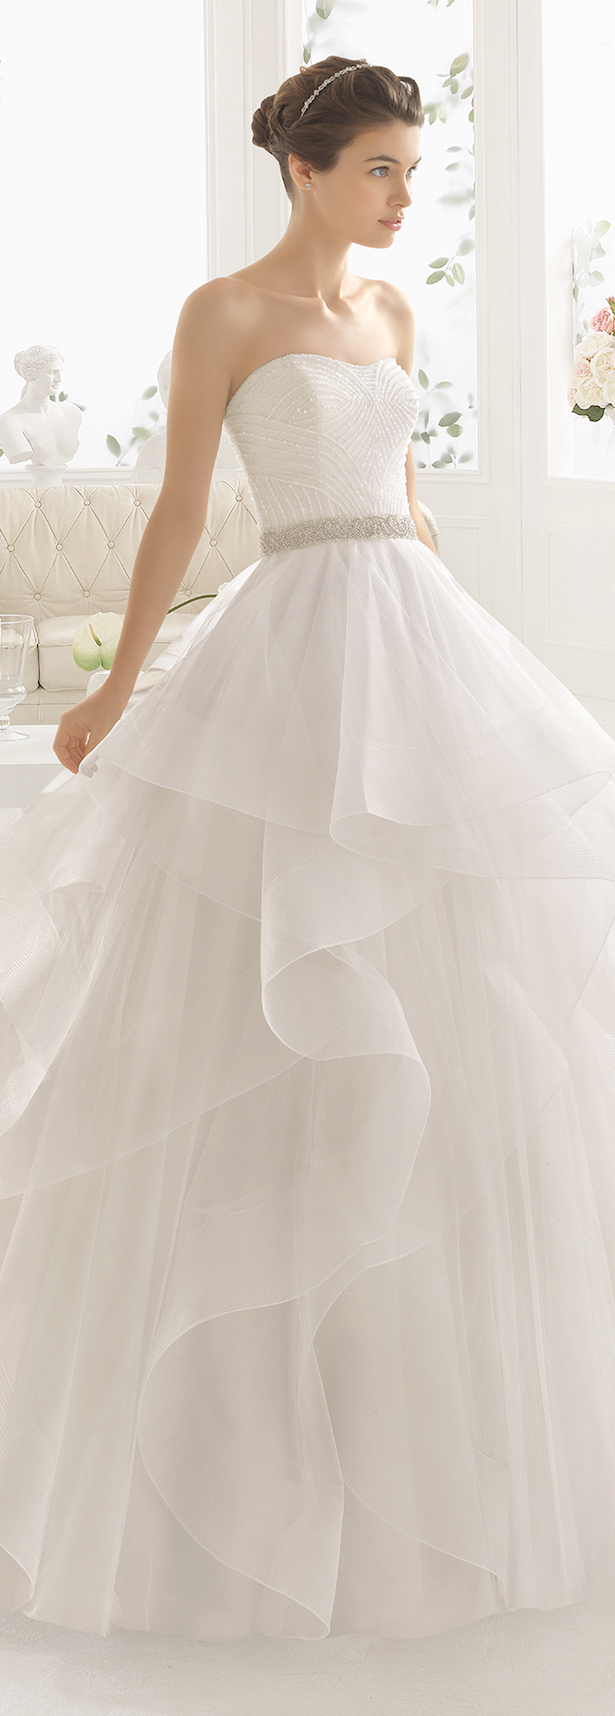 Wedding dress trends 2017 ruffled skirts belle the magazine for Wedding dresses with ruffles